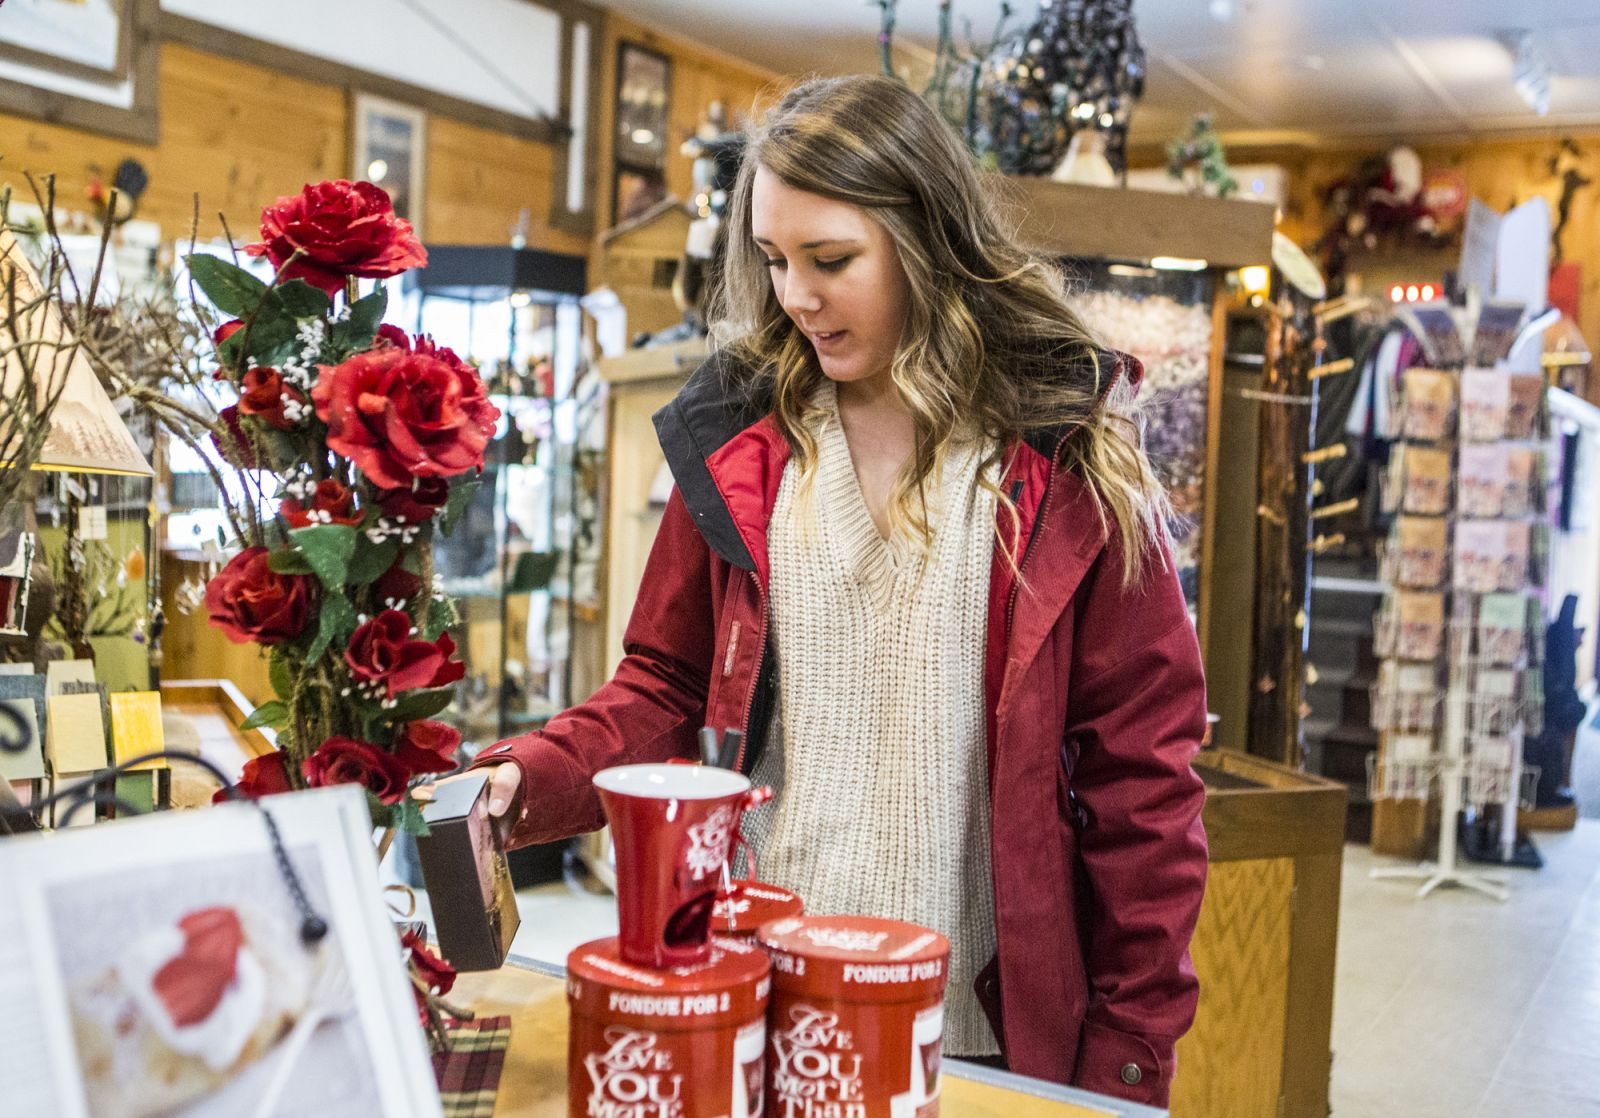 From small items for the stocking to large ones to match our heart, the High Falls Gorge gift shop has plenty to consider.